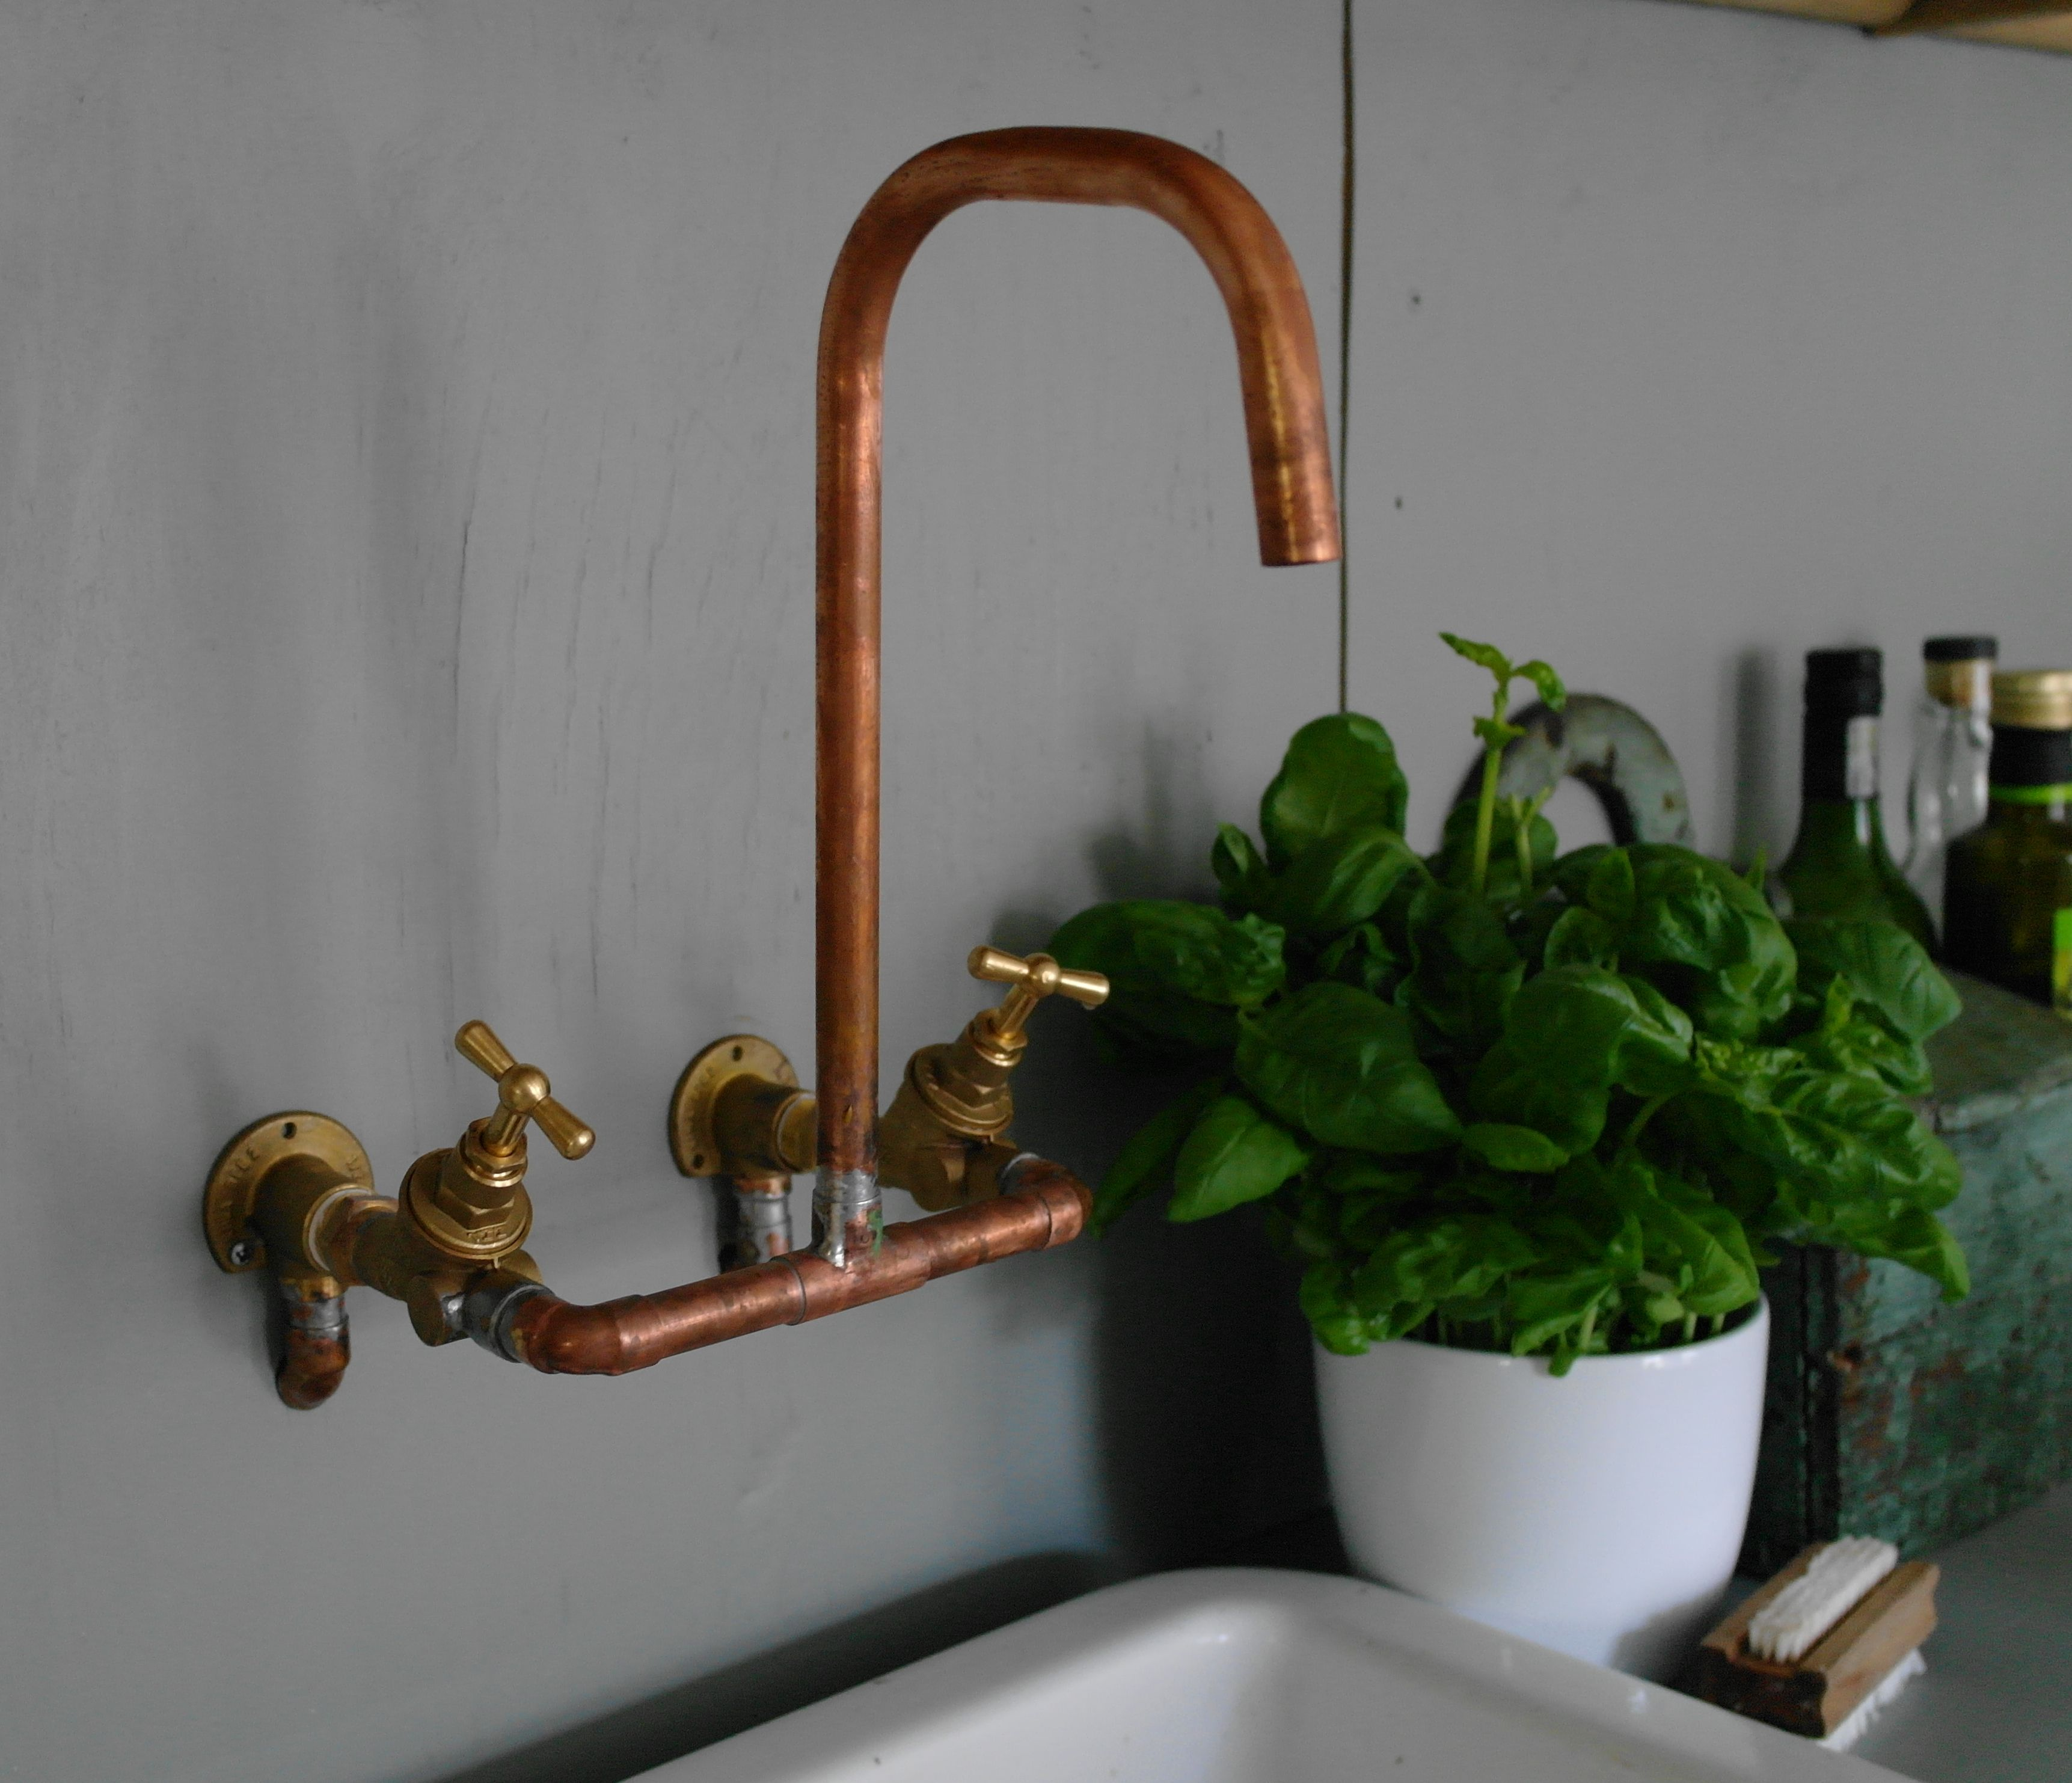 Pipe Faucets Would Be A Cool Idea, Maybe For A Laundry Room Or Guest Bath  Sink.